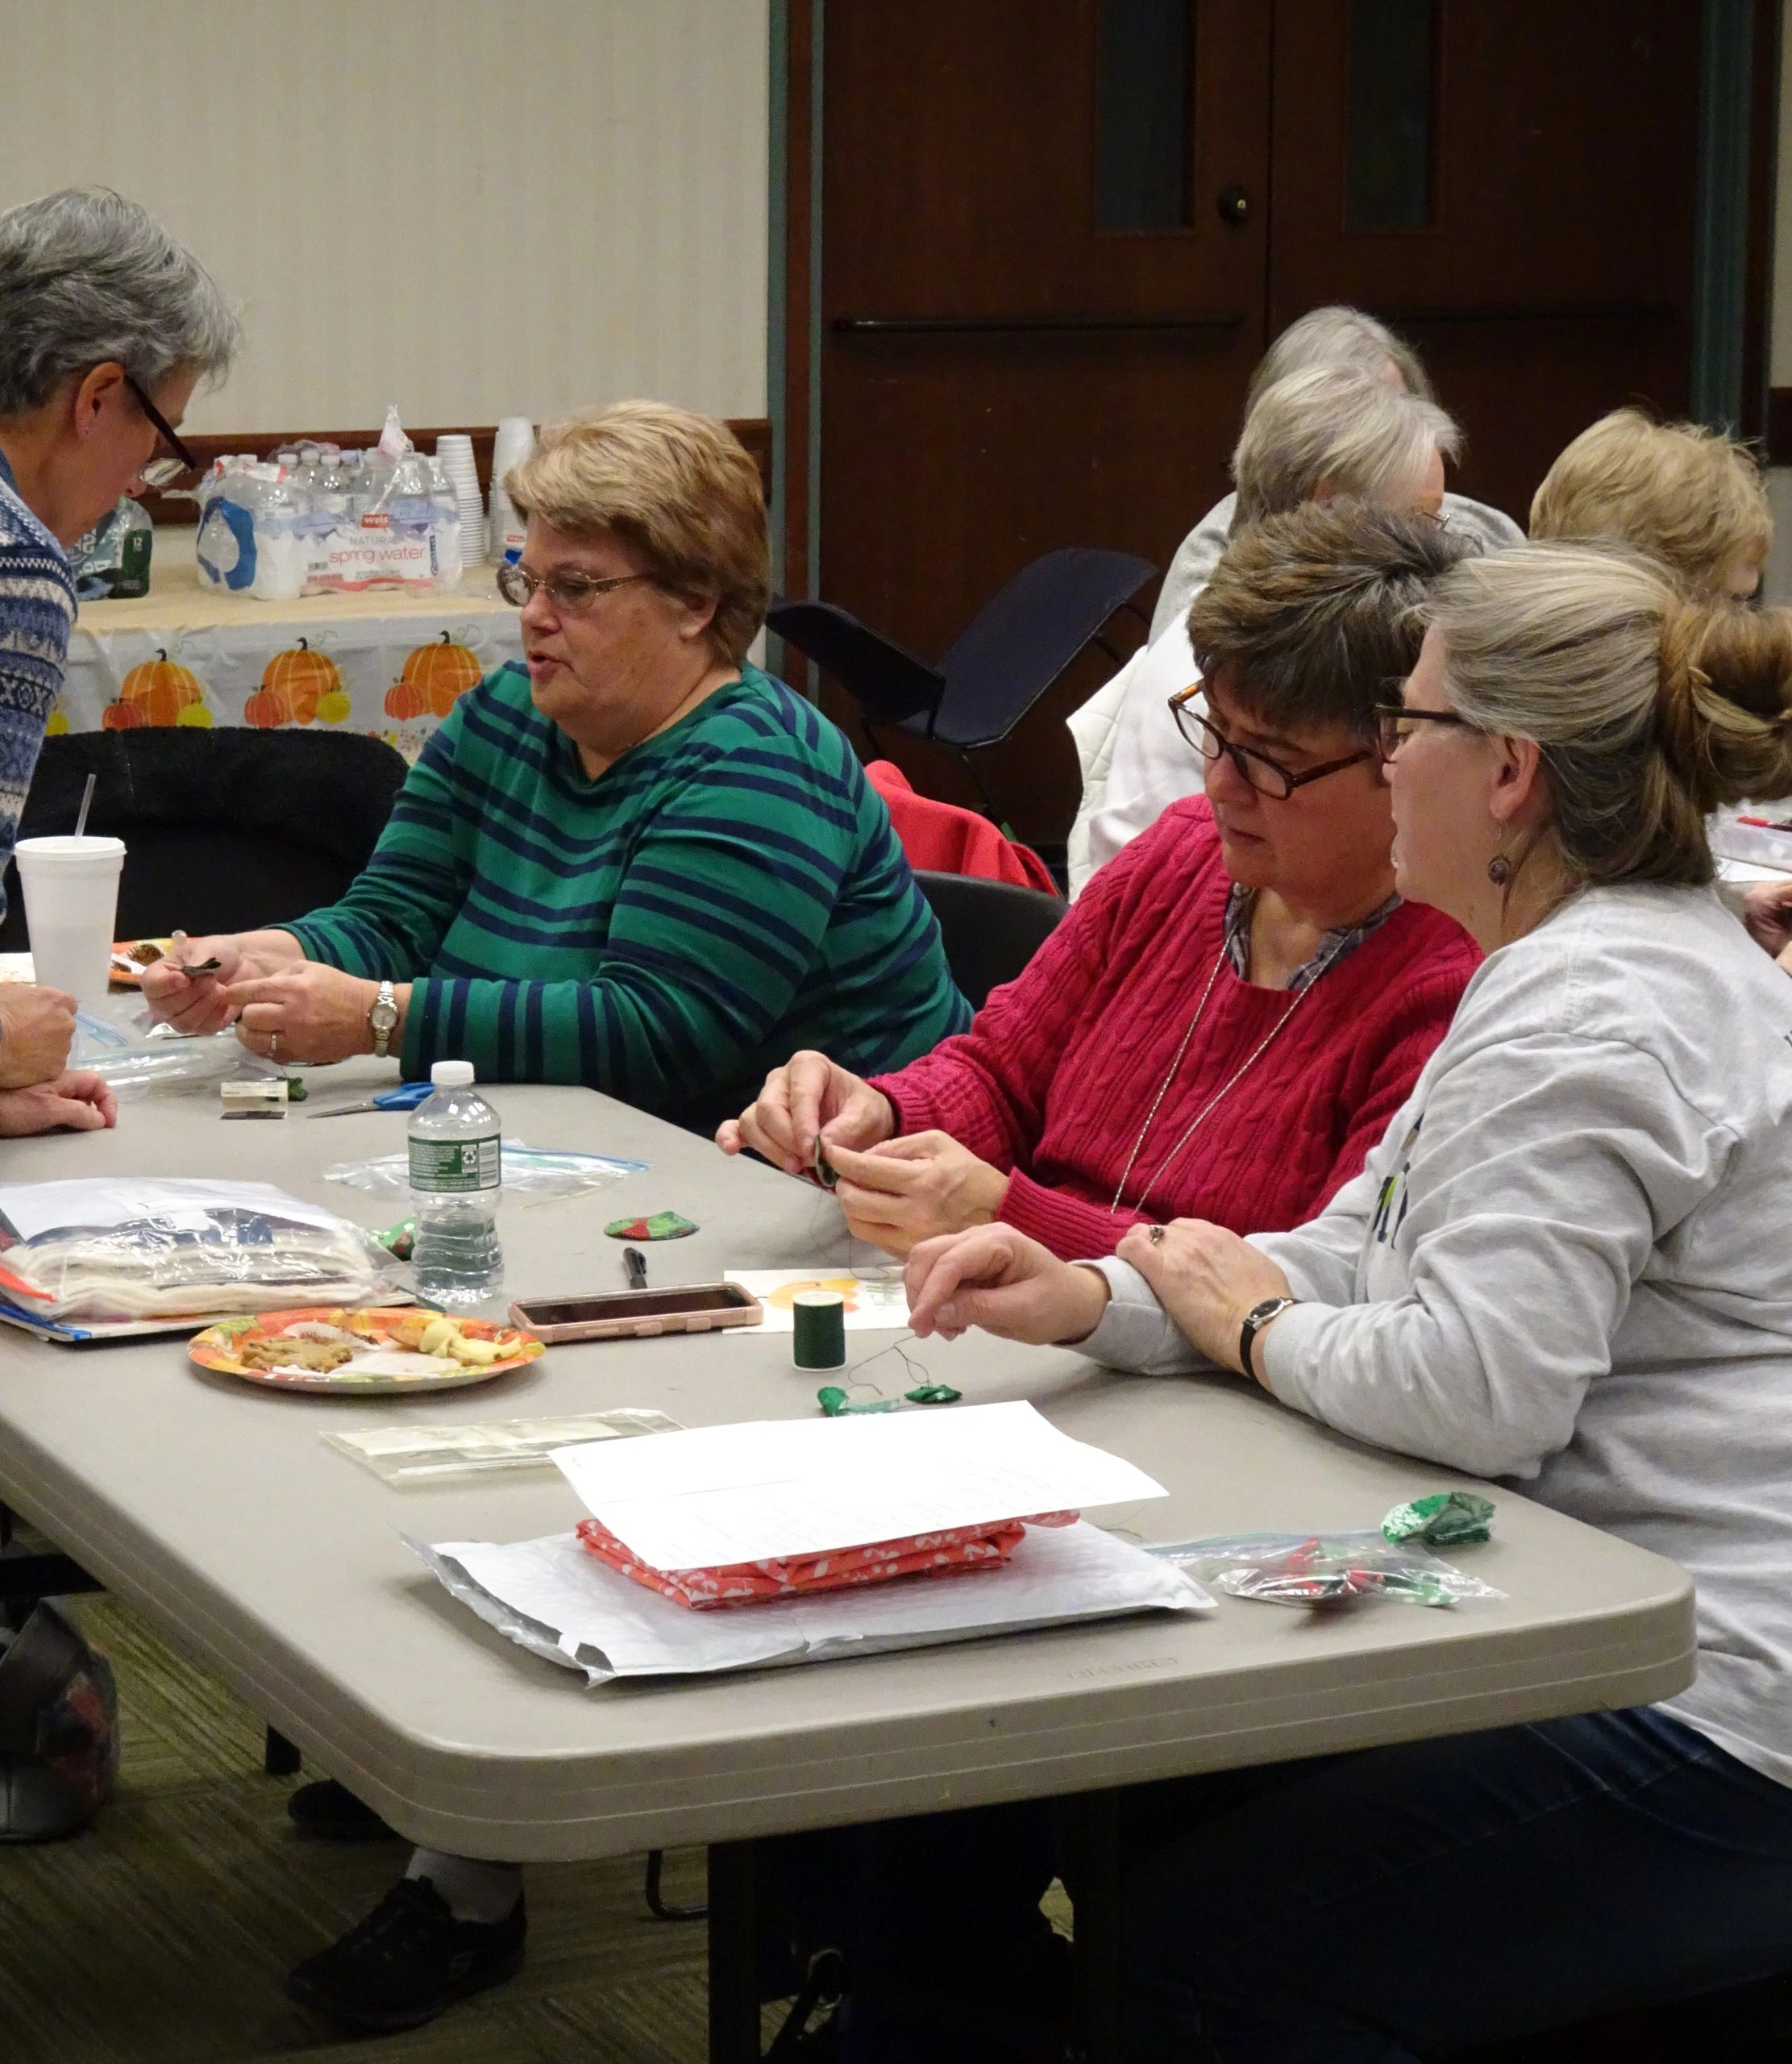 November meeting, members helping each other to work on Christmas ornaments.